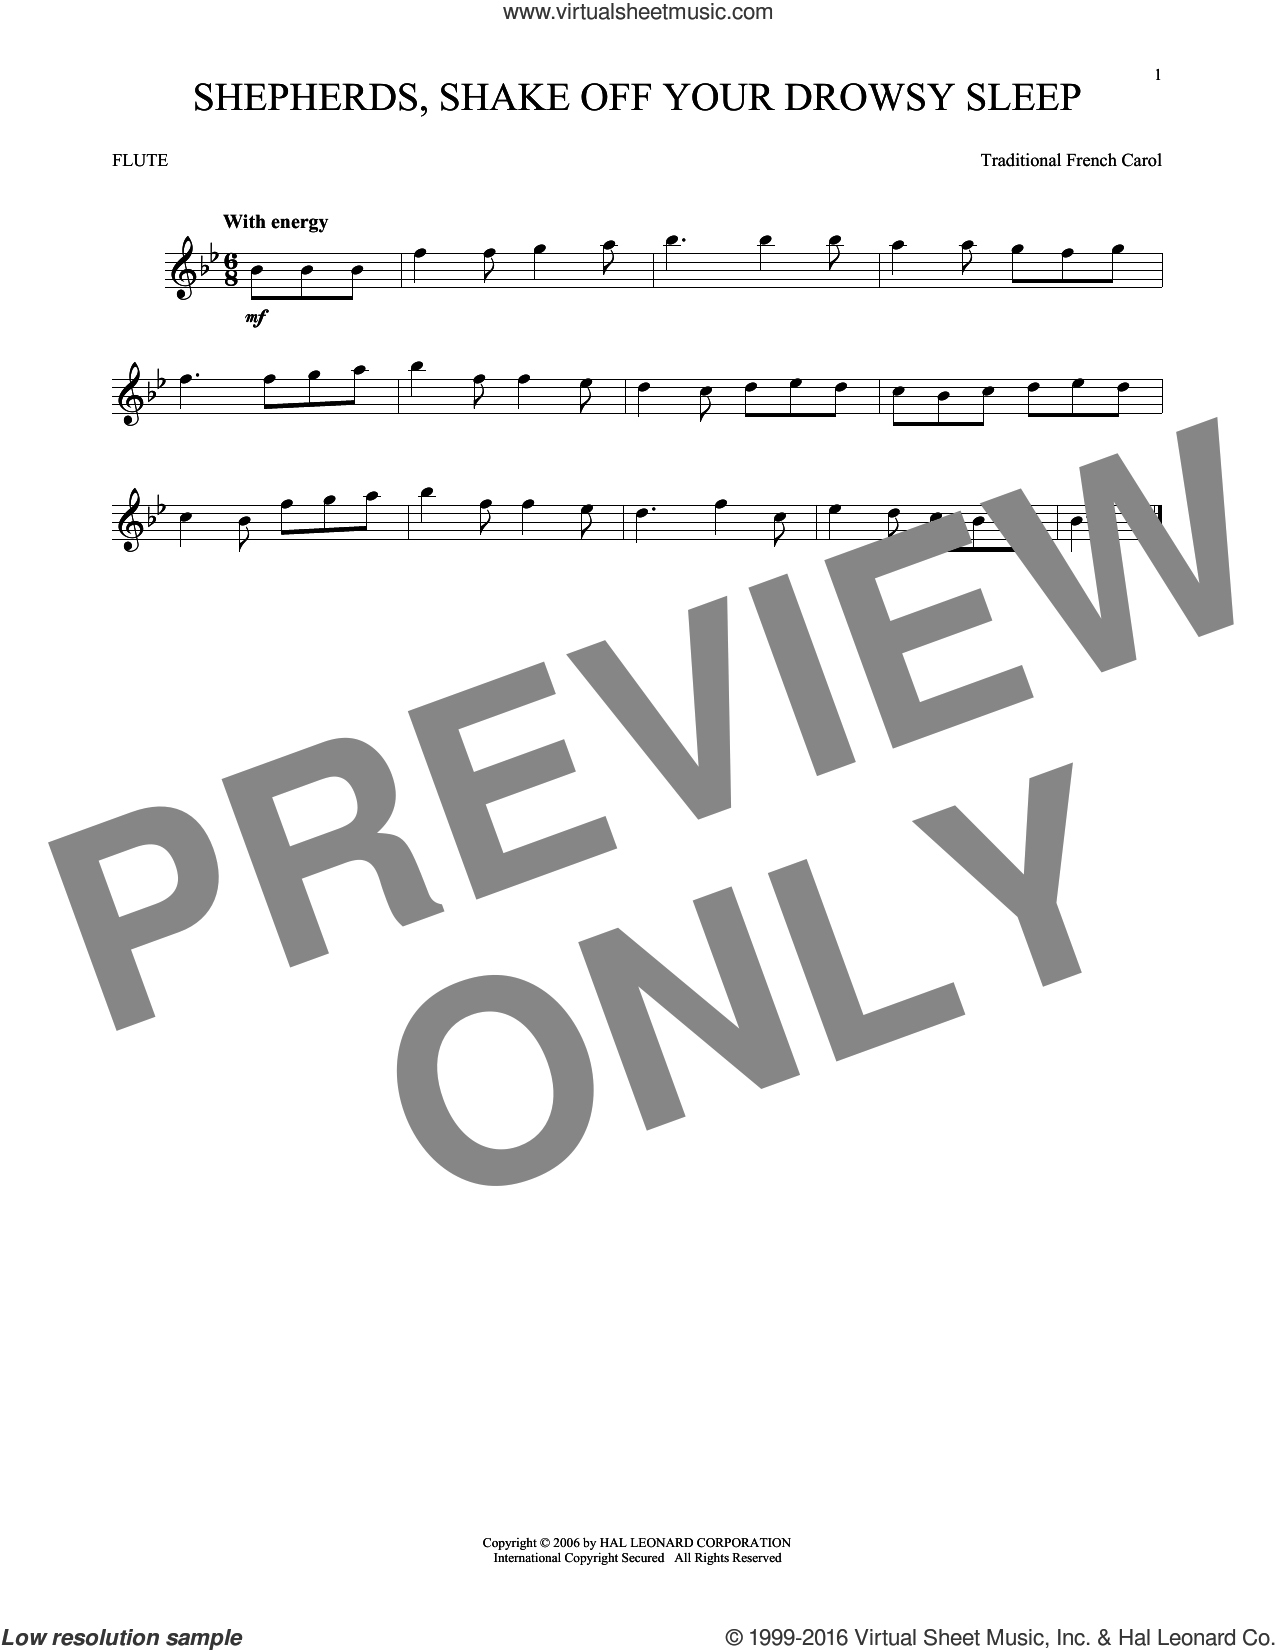 Shepherds, Shake Off Your Drowsy Sleep sheet music for flute solo. Score Image Preview.